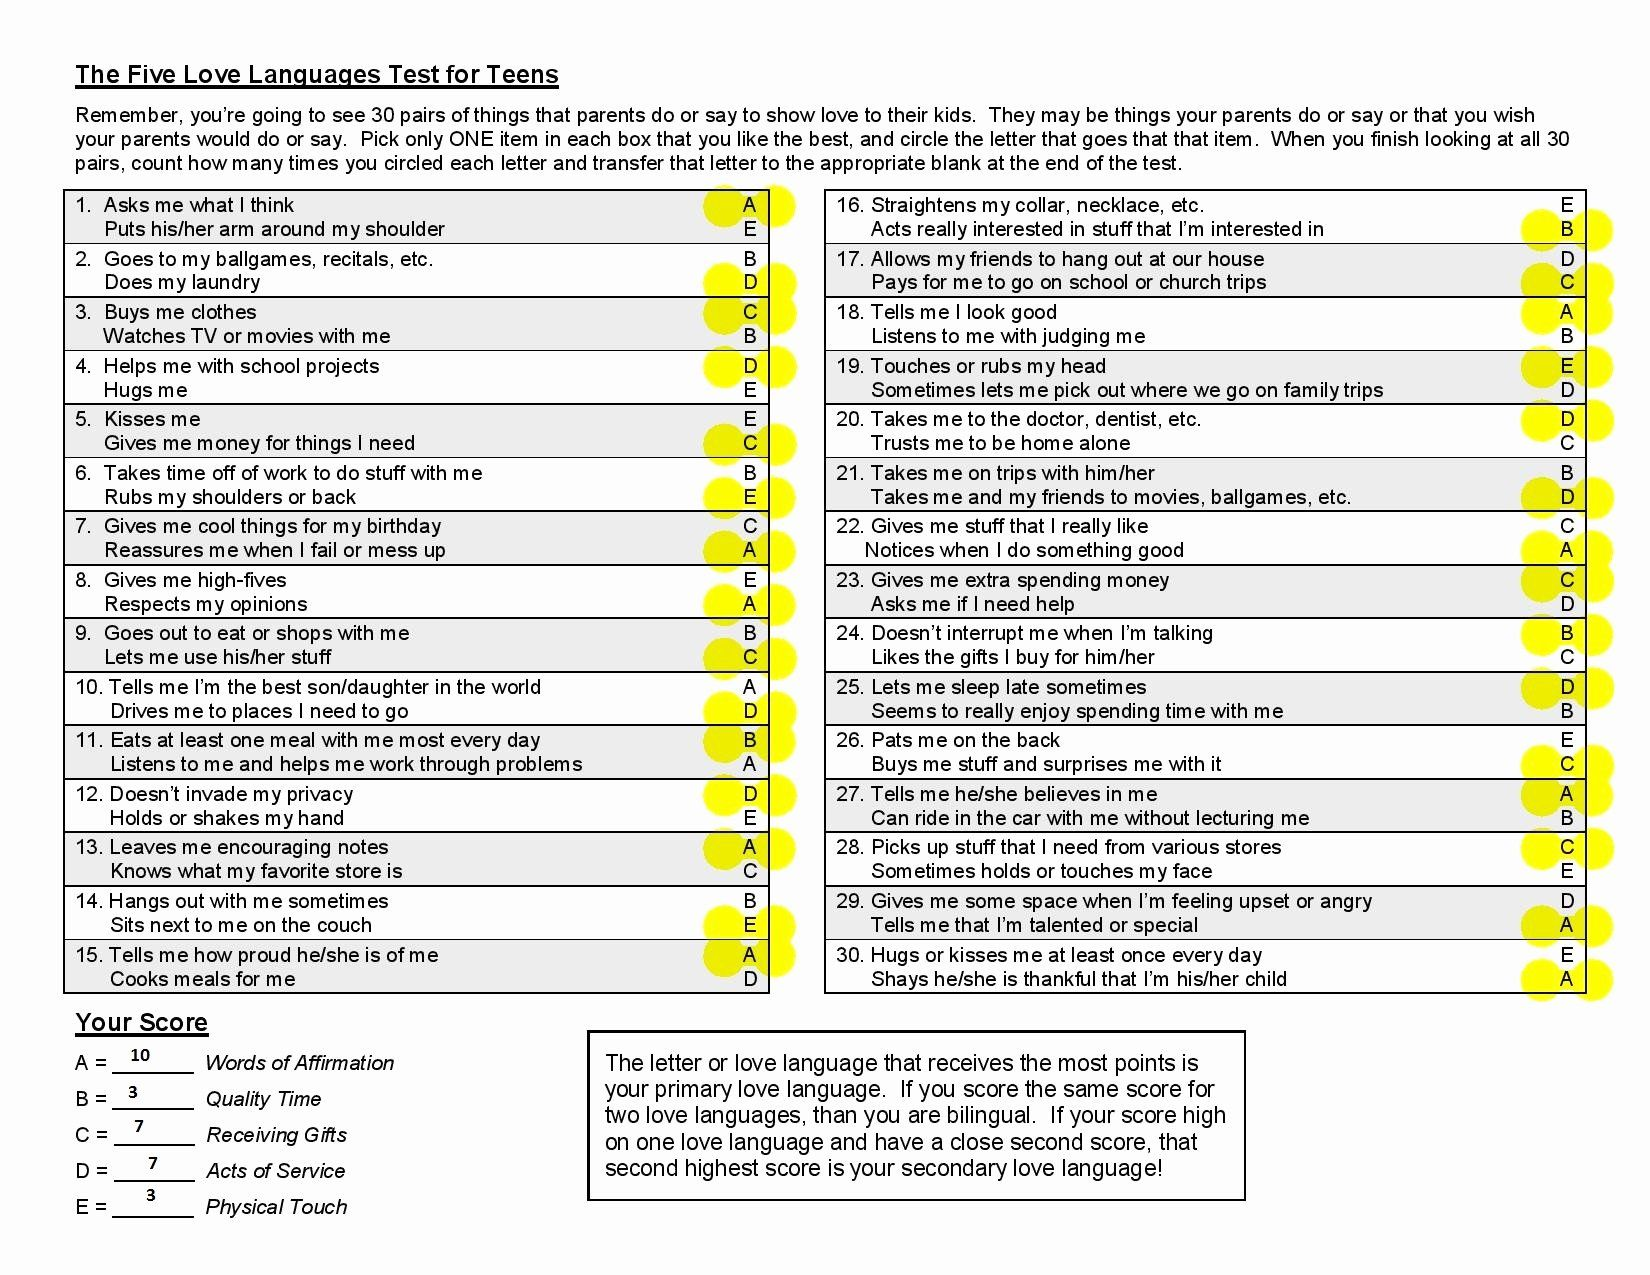 5 Love Languages Worksheet Luxury 5 Love Languages Free Download Chessmuseum Template Library In 2020 Language Worksheets Love Language Test Love Languages